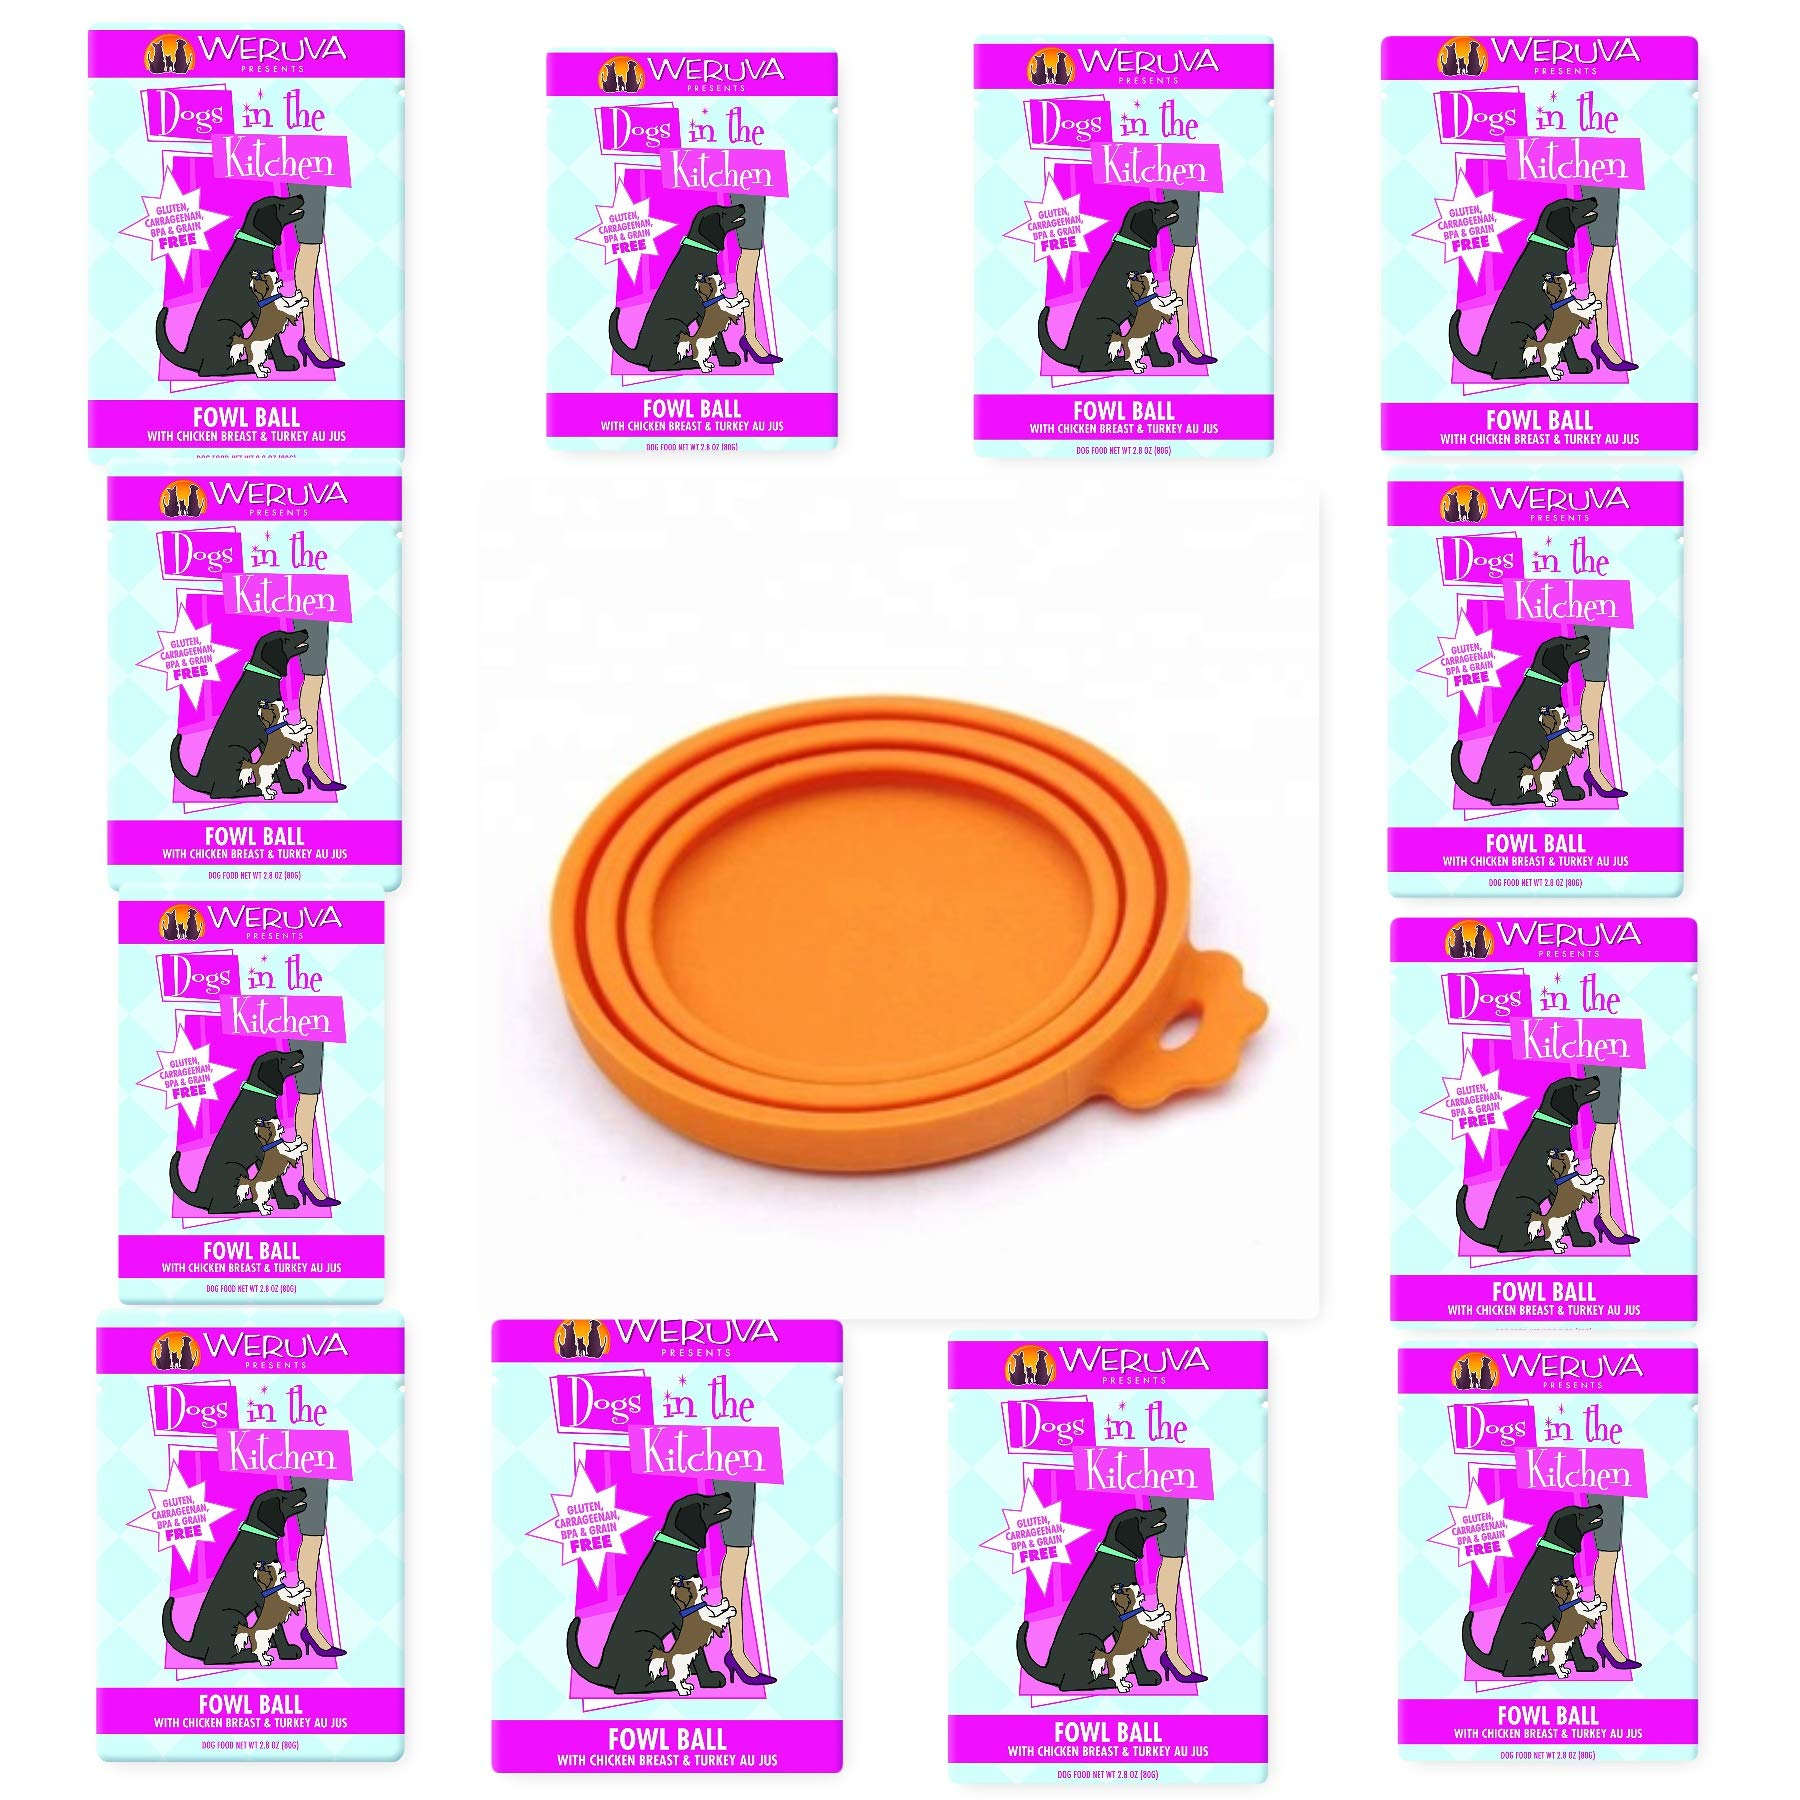 Weruva 12 Pack Dogs in The Kitchen, Fowl Ball with Chicken Breast & Turkey Au Jus Wet Dog Food 2.8oz Pouch, Plus a Silicone Cat/Dog Food Cover. - 13 Items Total.